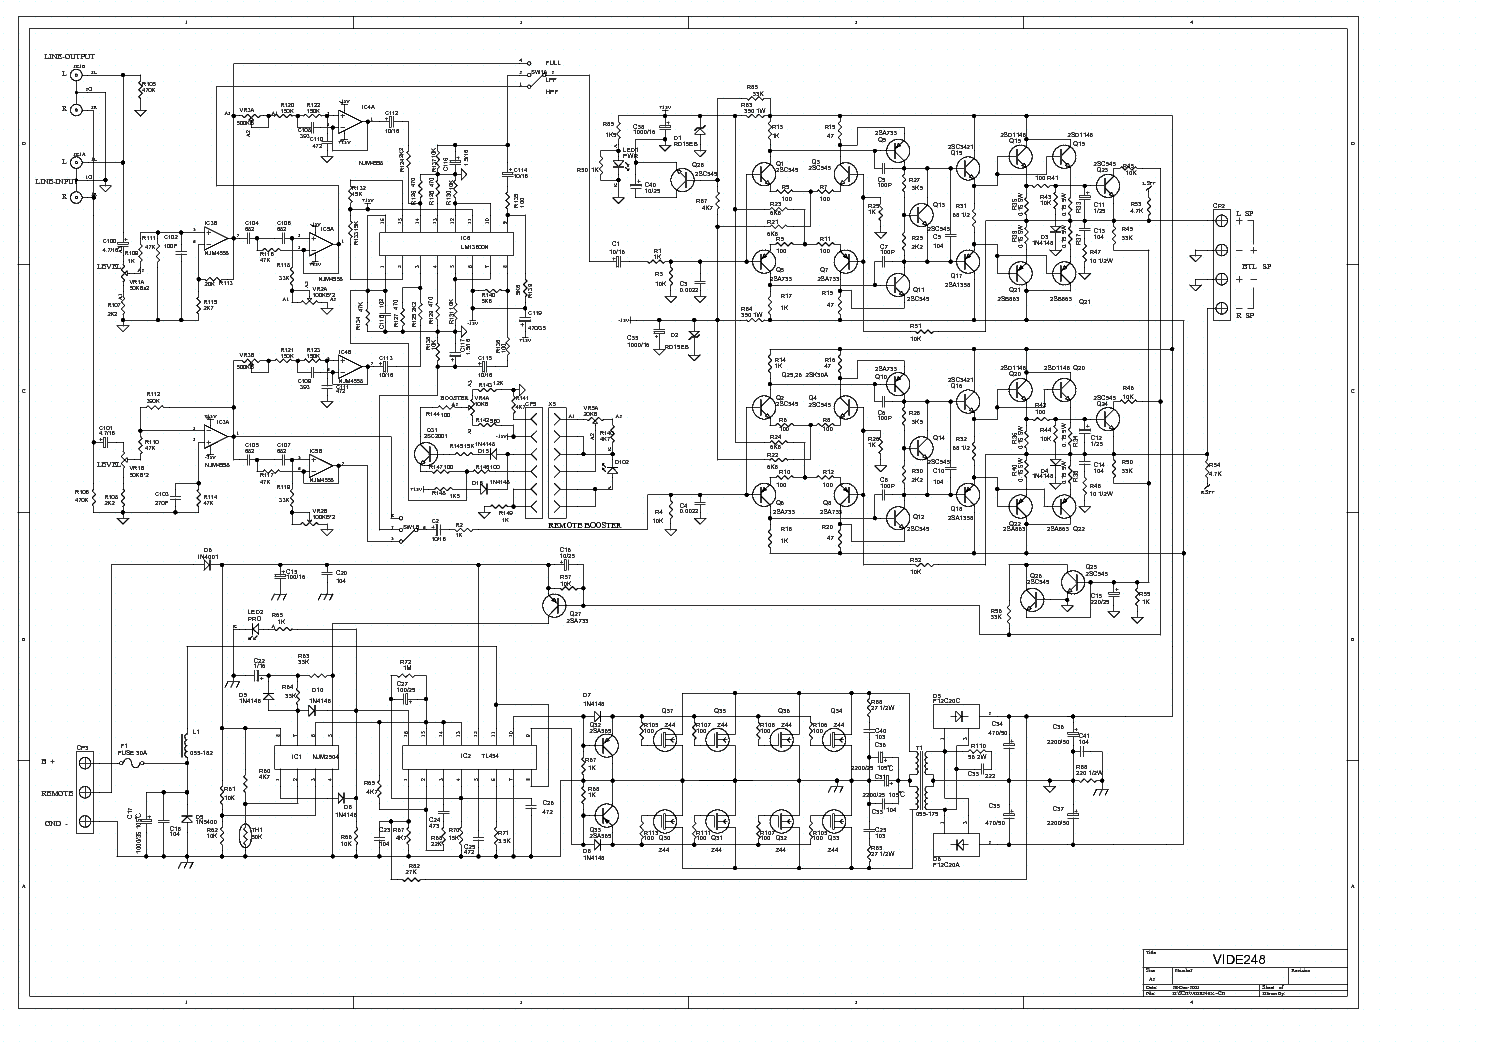 lanzar_vibe248_car_amplifier_sch.pdf_1 lanzar wiring diagram lanzar maxp124d wiring diagram \u2022 free wiring vibe subwoofer wiring diagram at alyssarenee.co